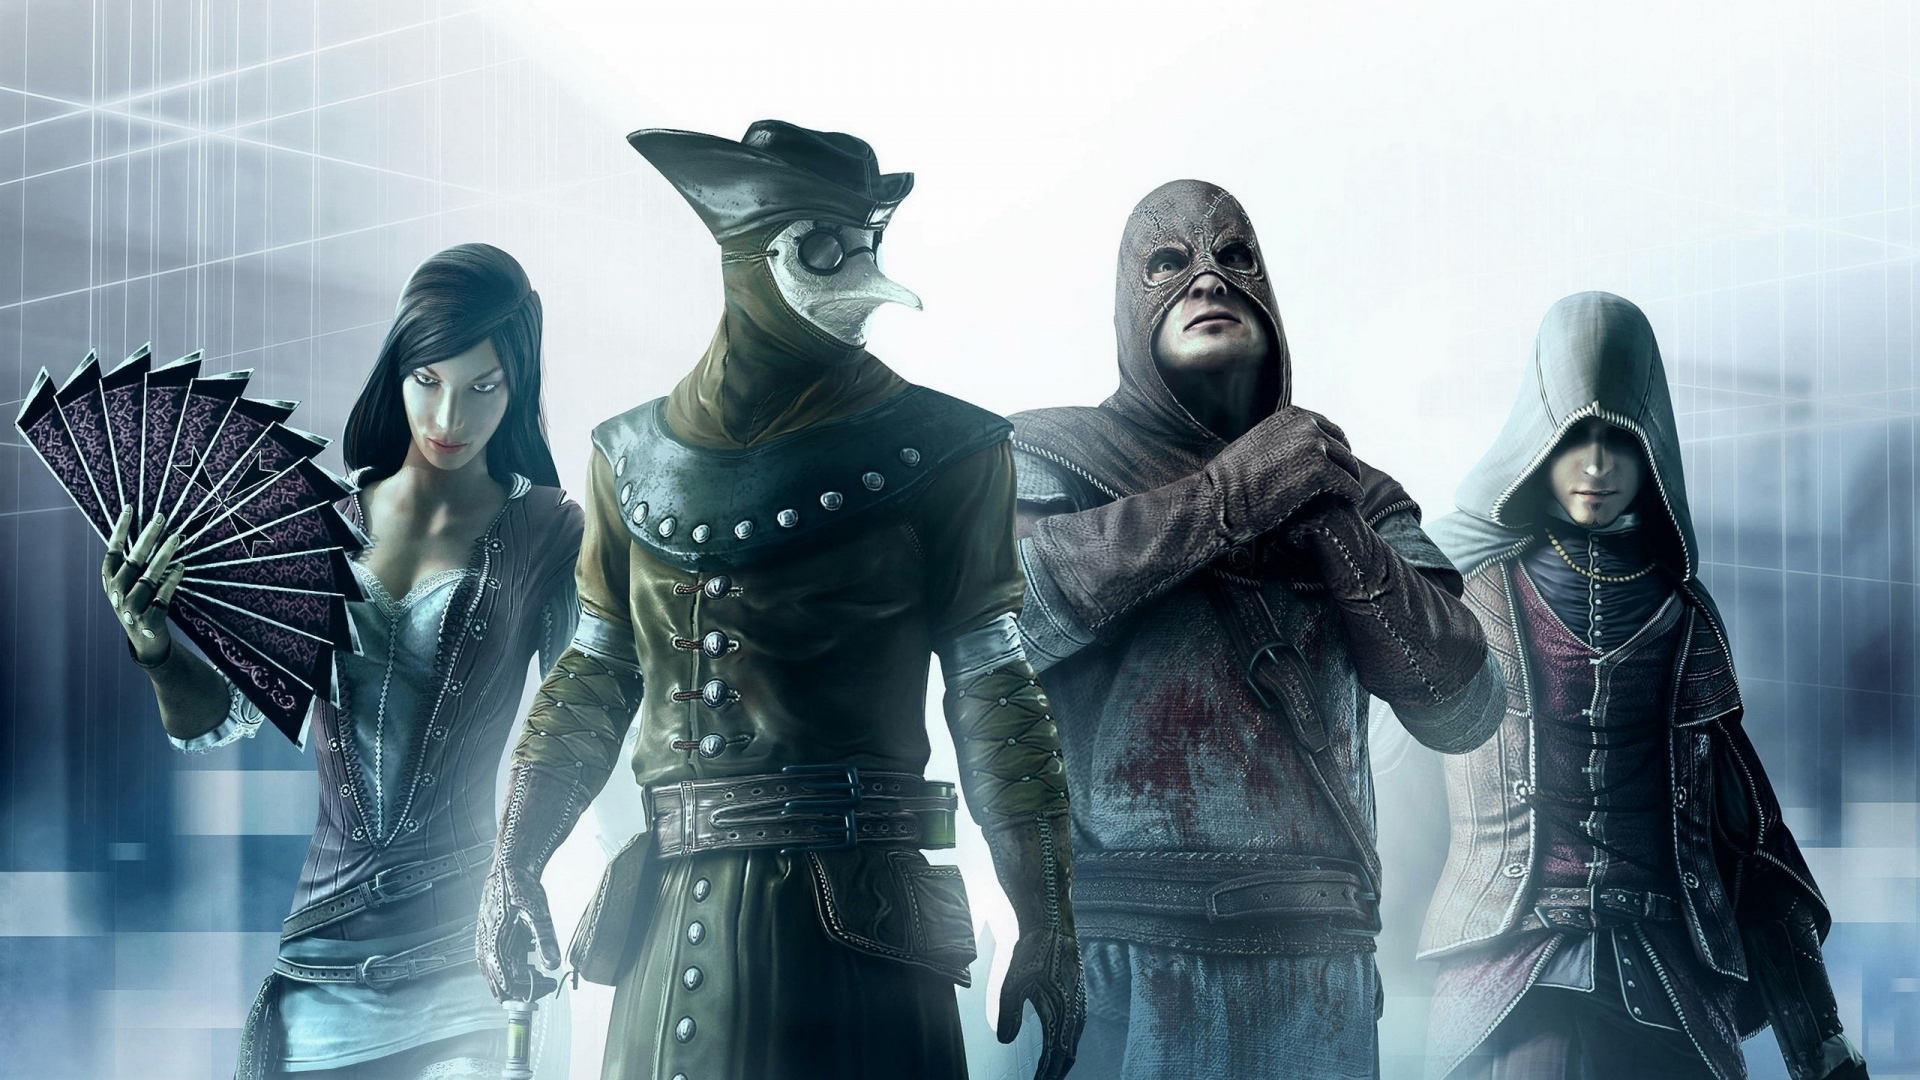 Download Wallpaper 1920x1080 Assassins Creed Characters Faces